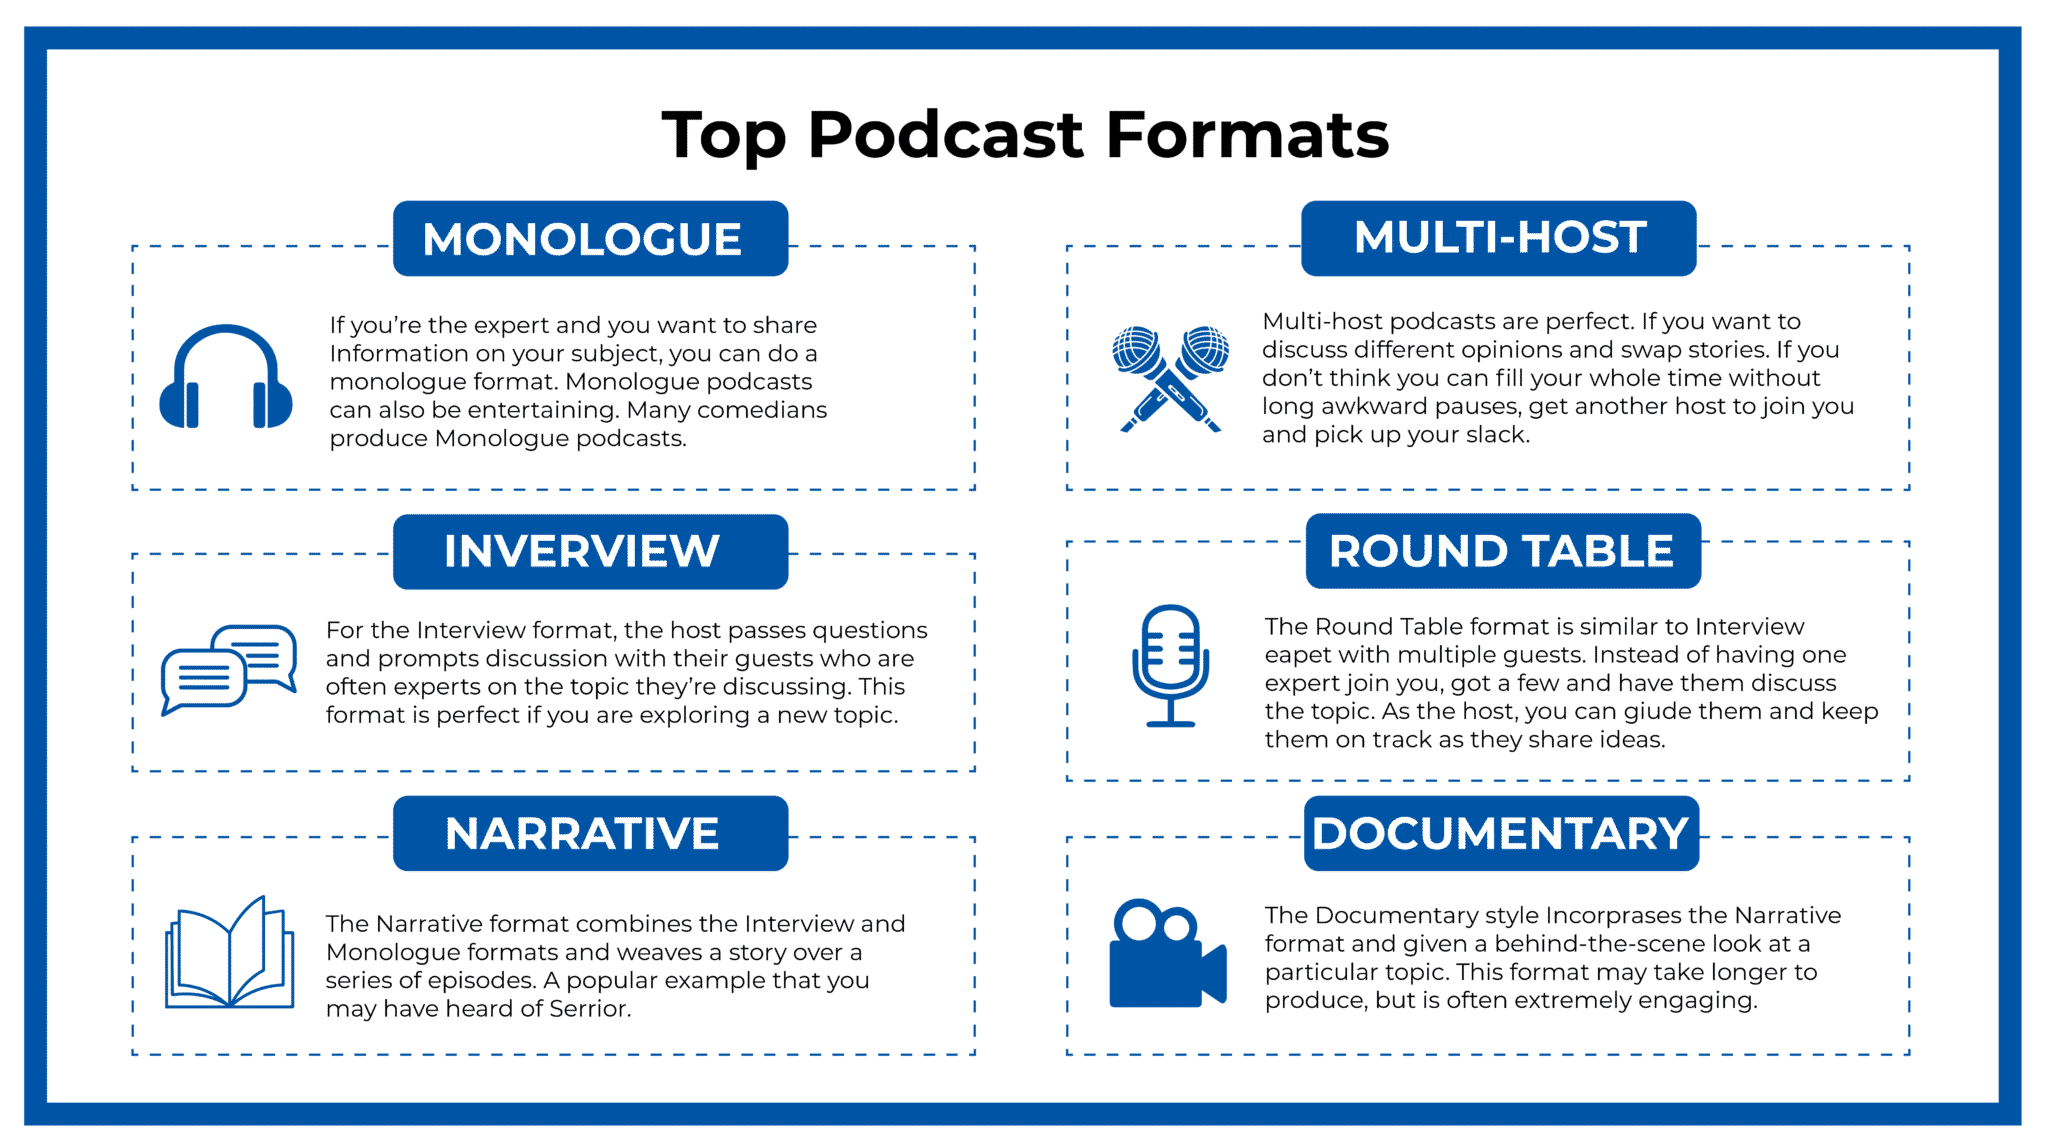 TOP PODCAST FORMATS